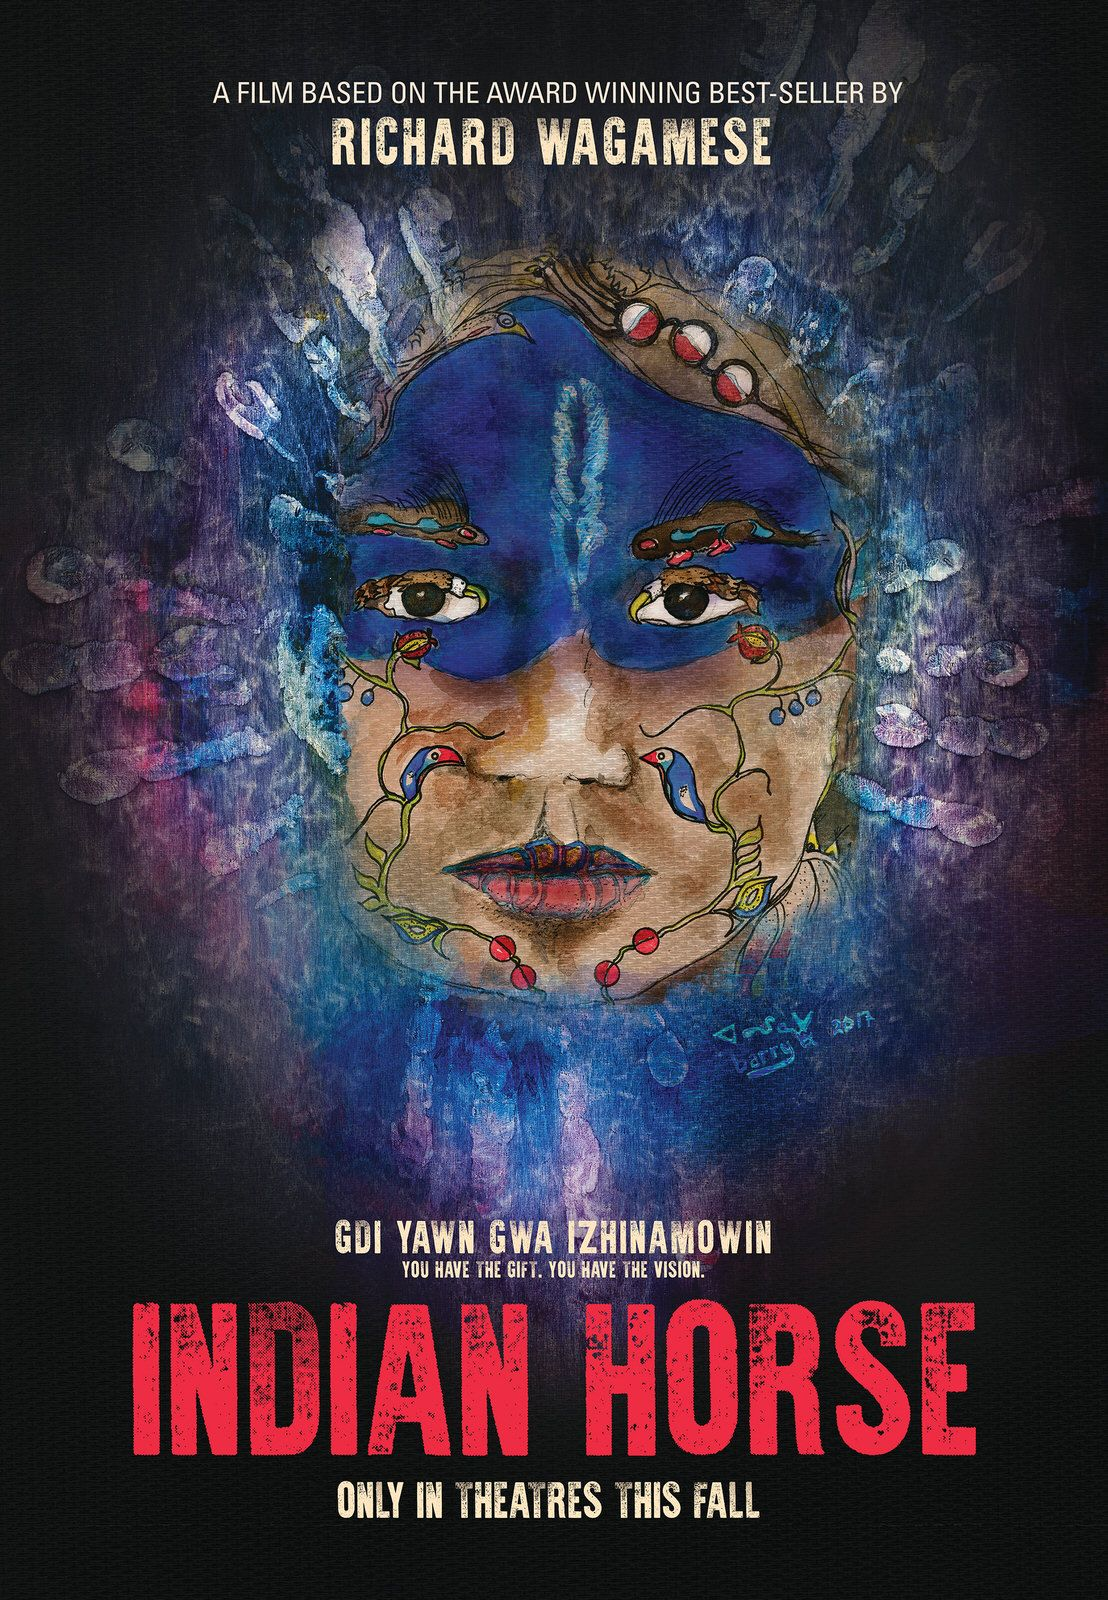 INDIAN HORSE - Stephen S. Campanelli | FNC - Film posters ...